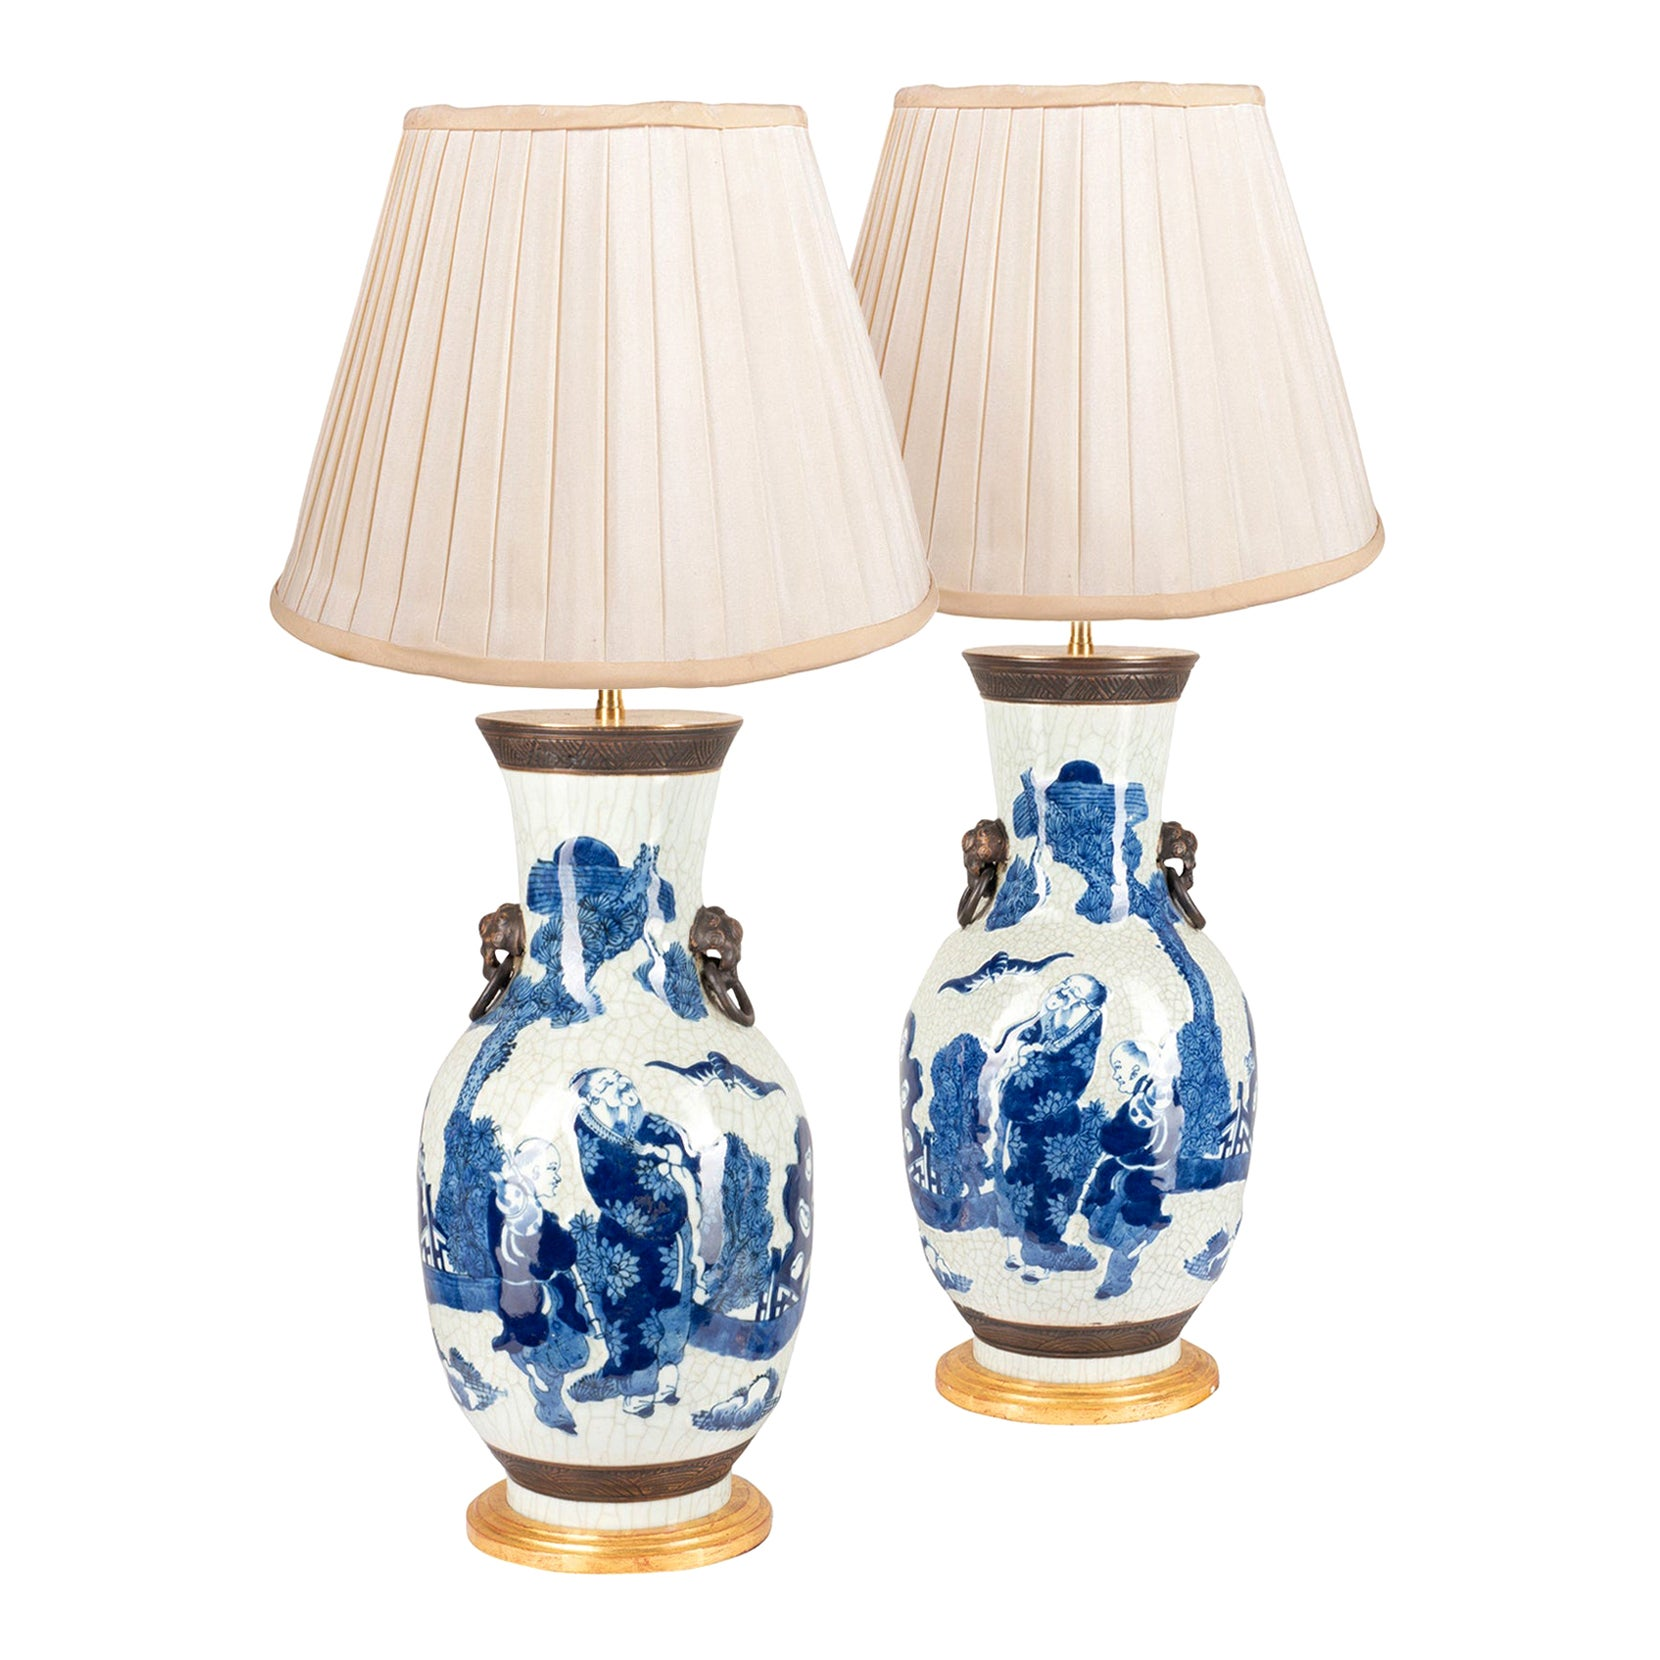 Pair of Chinese Blue and White Crackle Ware Vases/Lamps